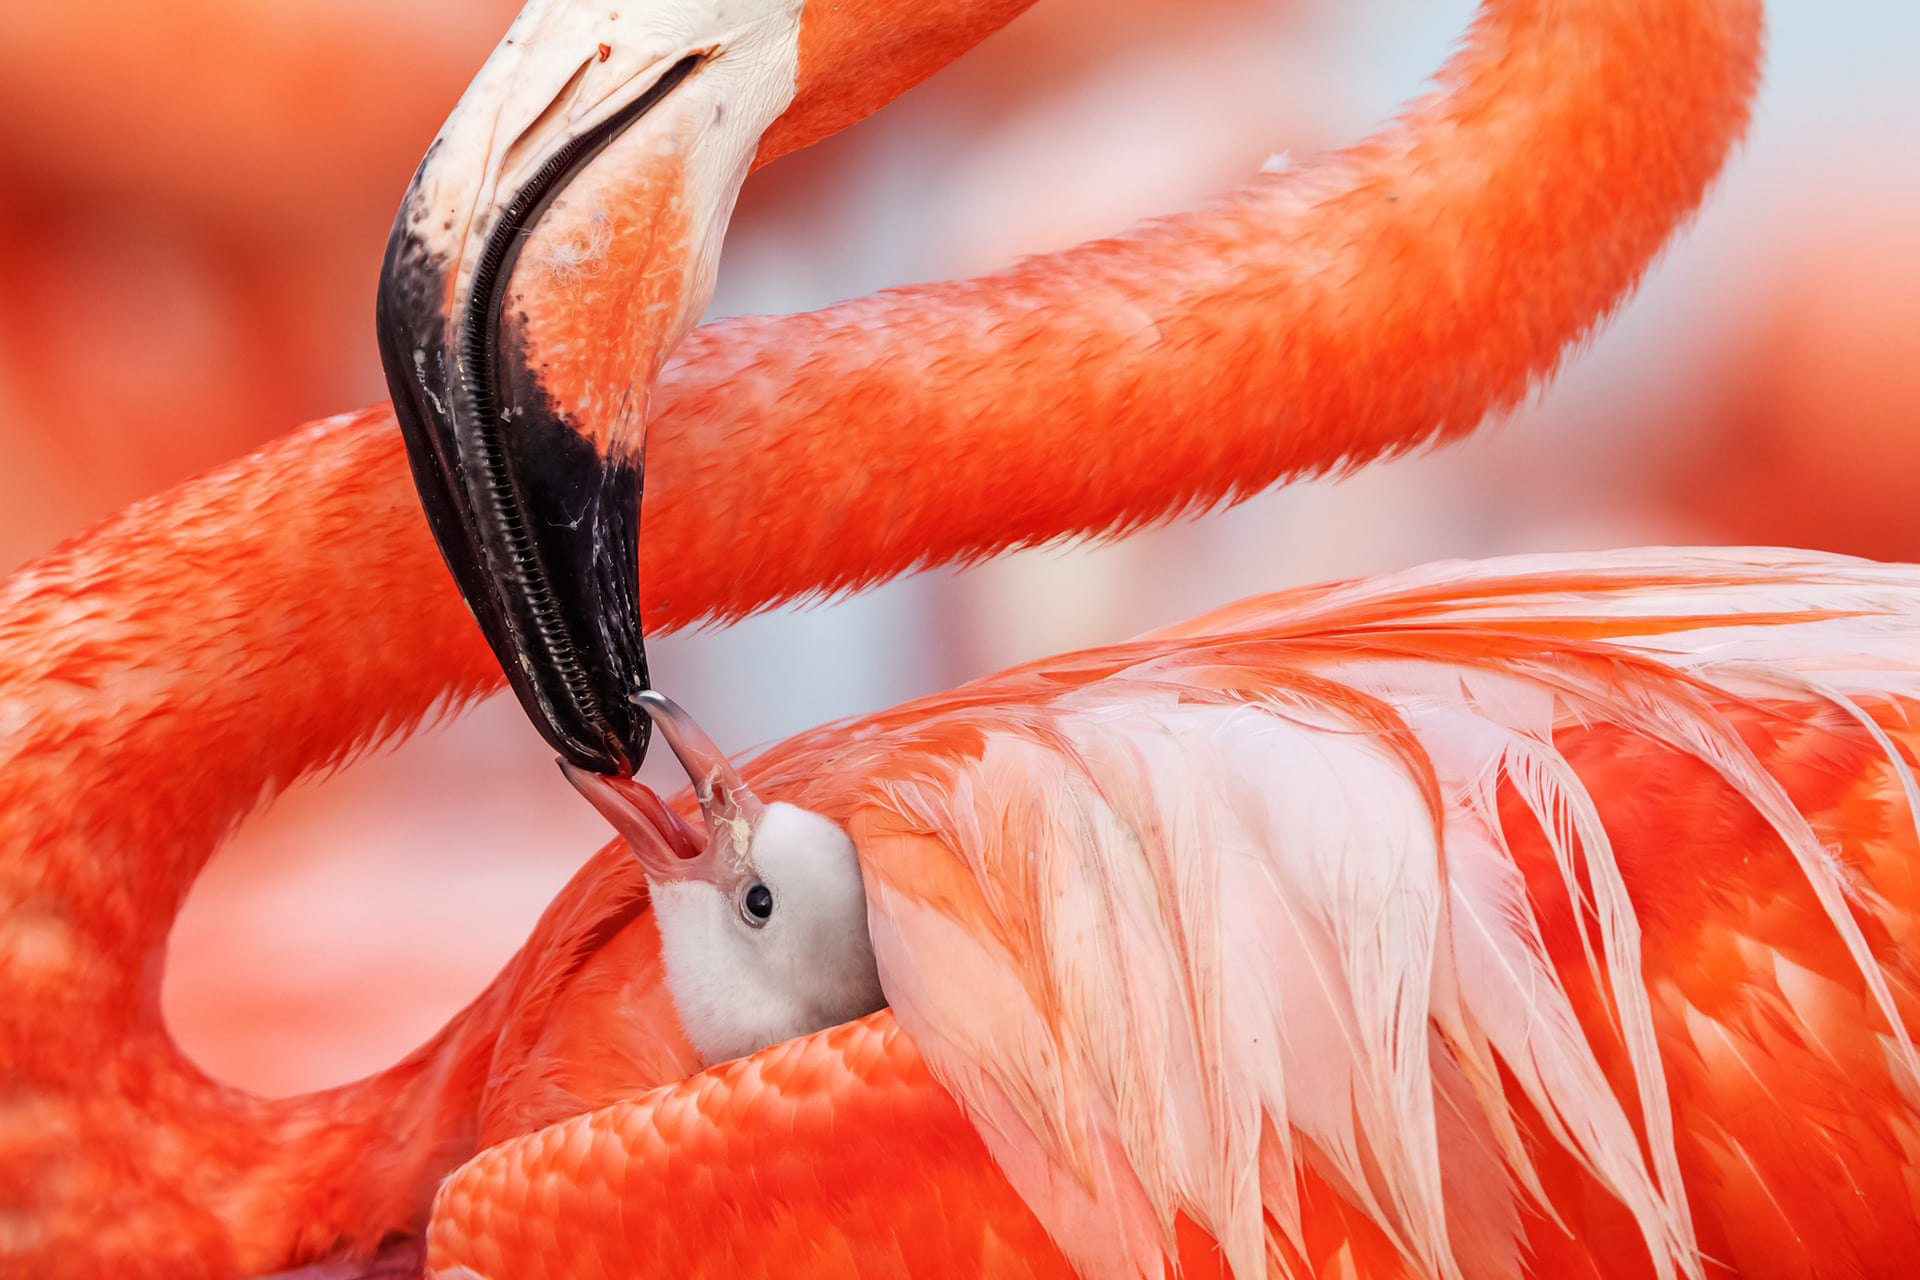 Beak to Beak by Claudio Contreras Koob (Mexico)Ría Lagartos Biosphere Reserve in the state of Yucatán is home to Mexico's largest flock of Caribbean flamingos. This chick, which is less than five days old, will stay in its nest for another day or so before it joins a crèche of other baby birds that wander around the colony searching for foodPhotograph: Caludio Contreras Koob/2019 Wildlife Photographer of the Year